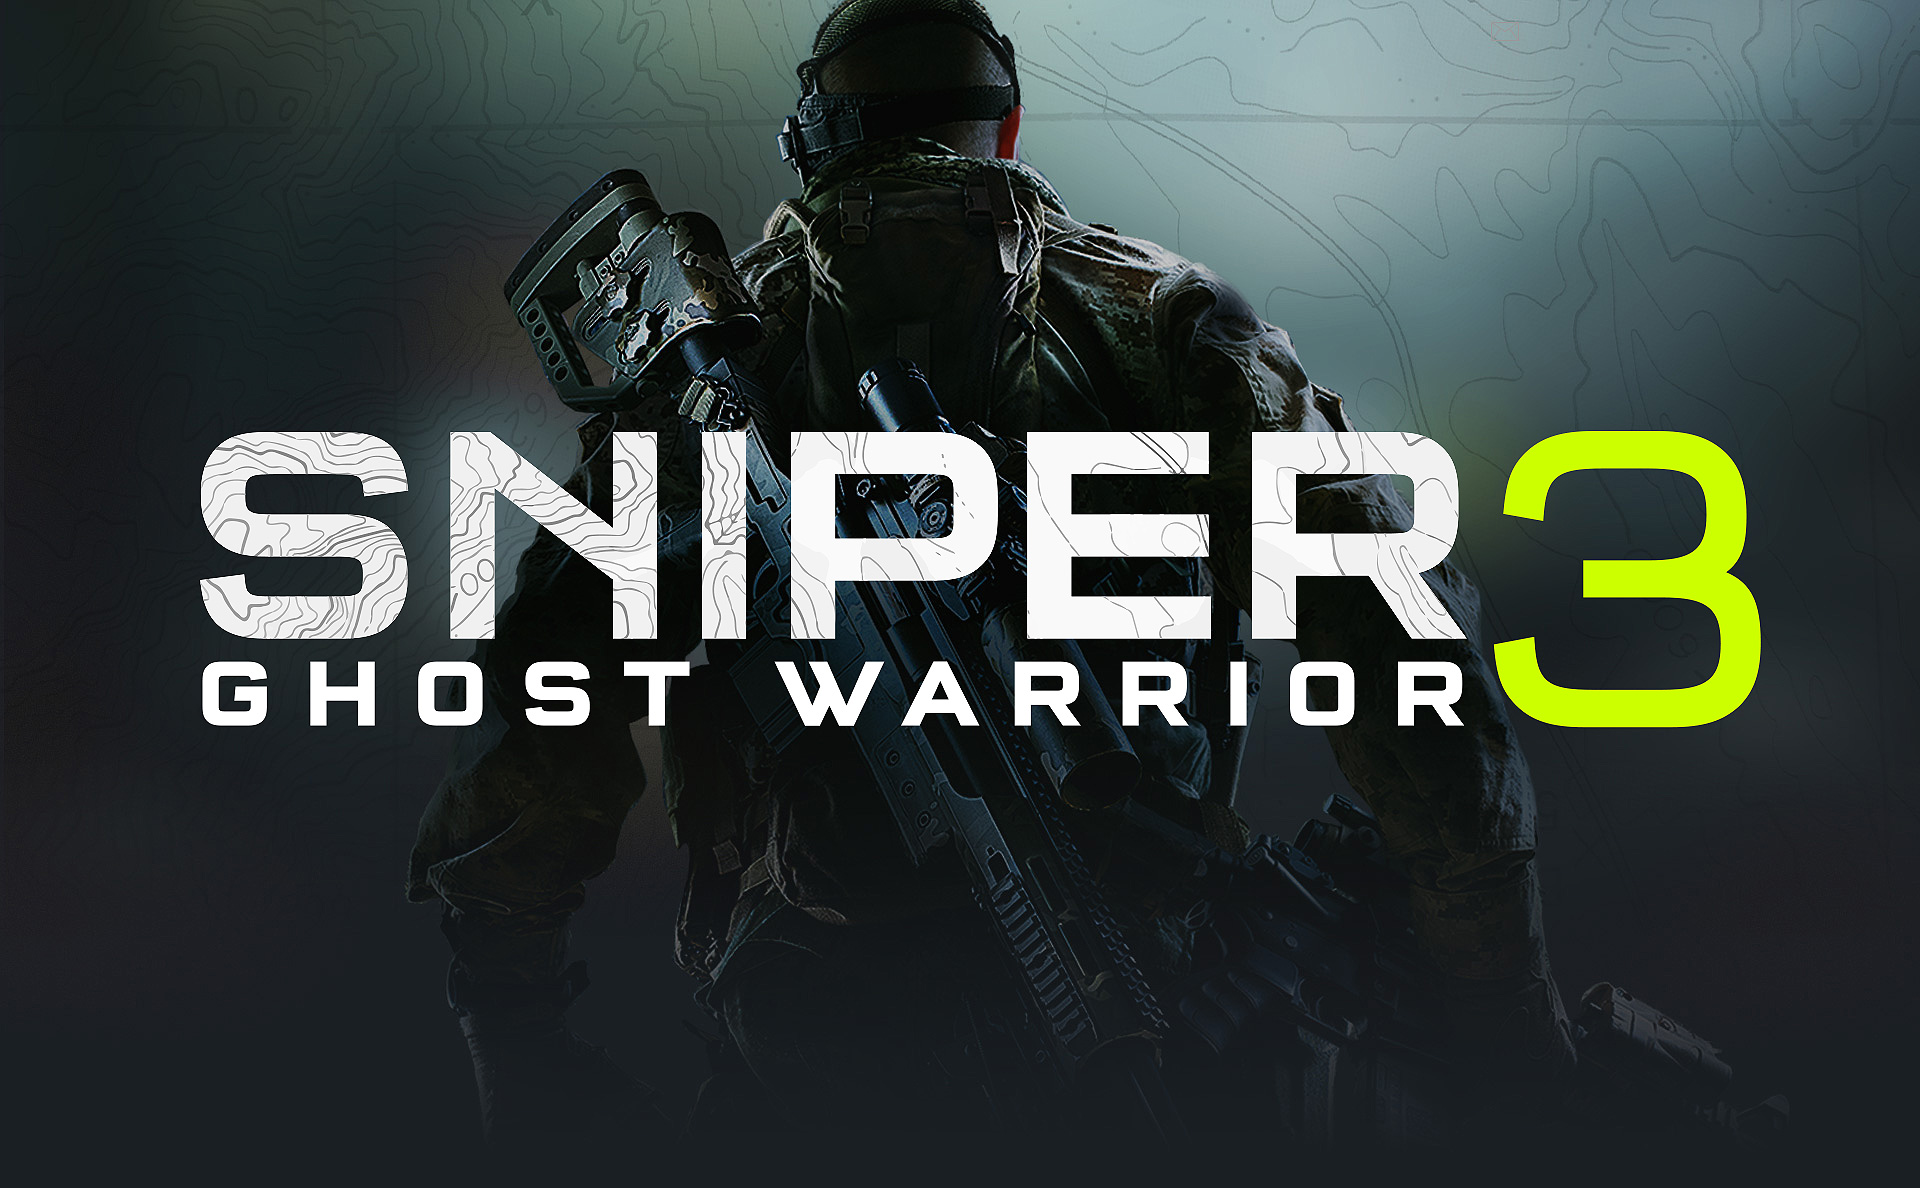 SNIPER : GHOST WARRIOR 3 LA RECENSIONE